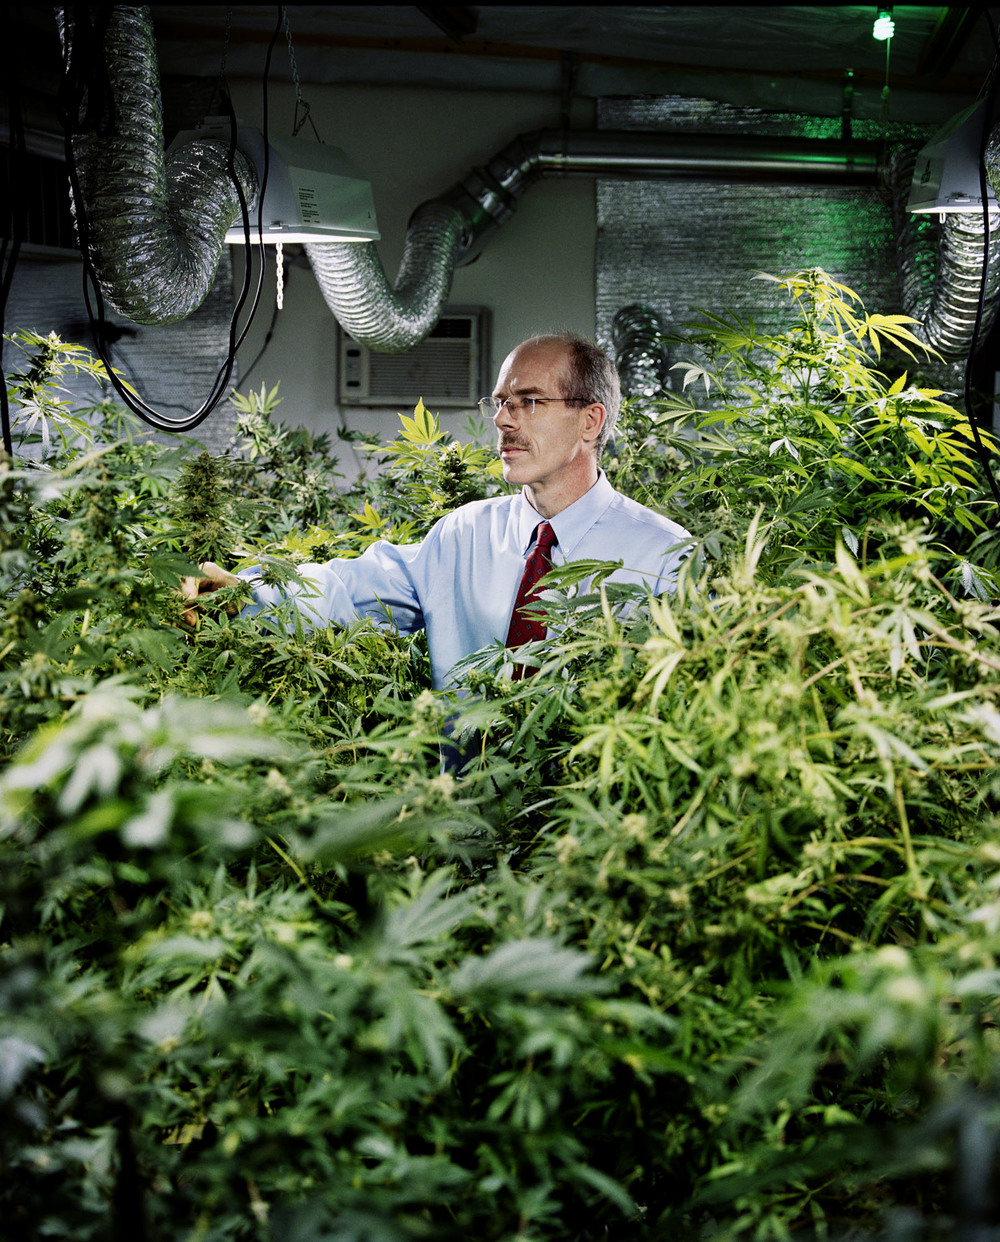 Andy Cookston, owner of Cannabis Medical Technology, in the grow room - Denver, CO